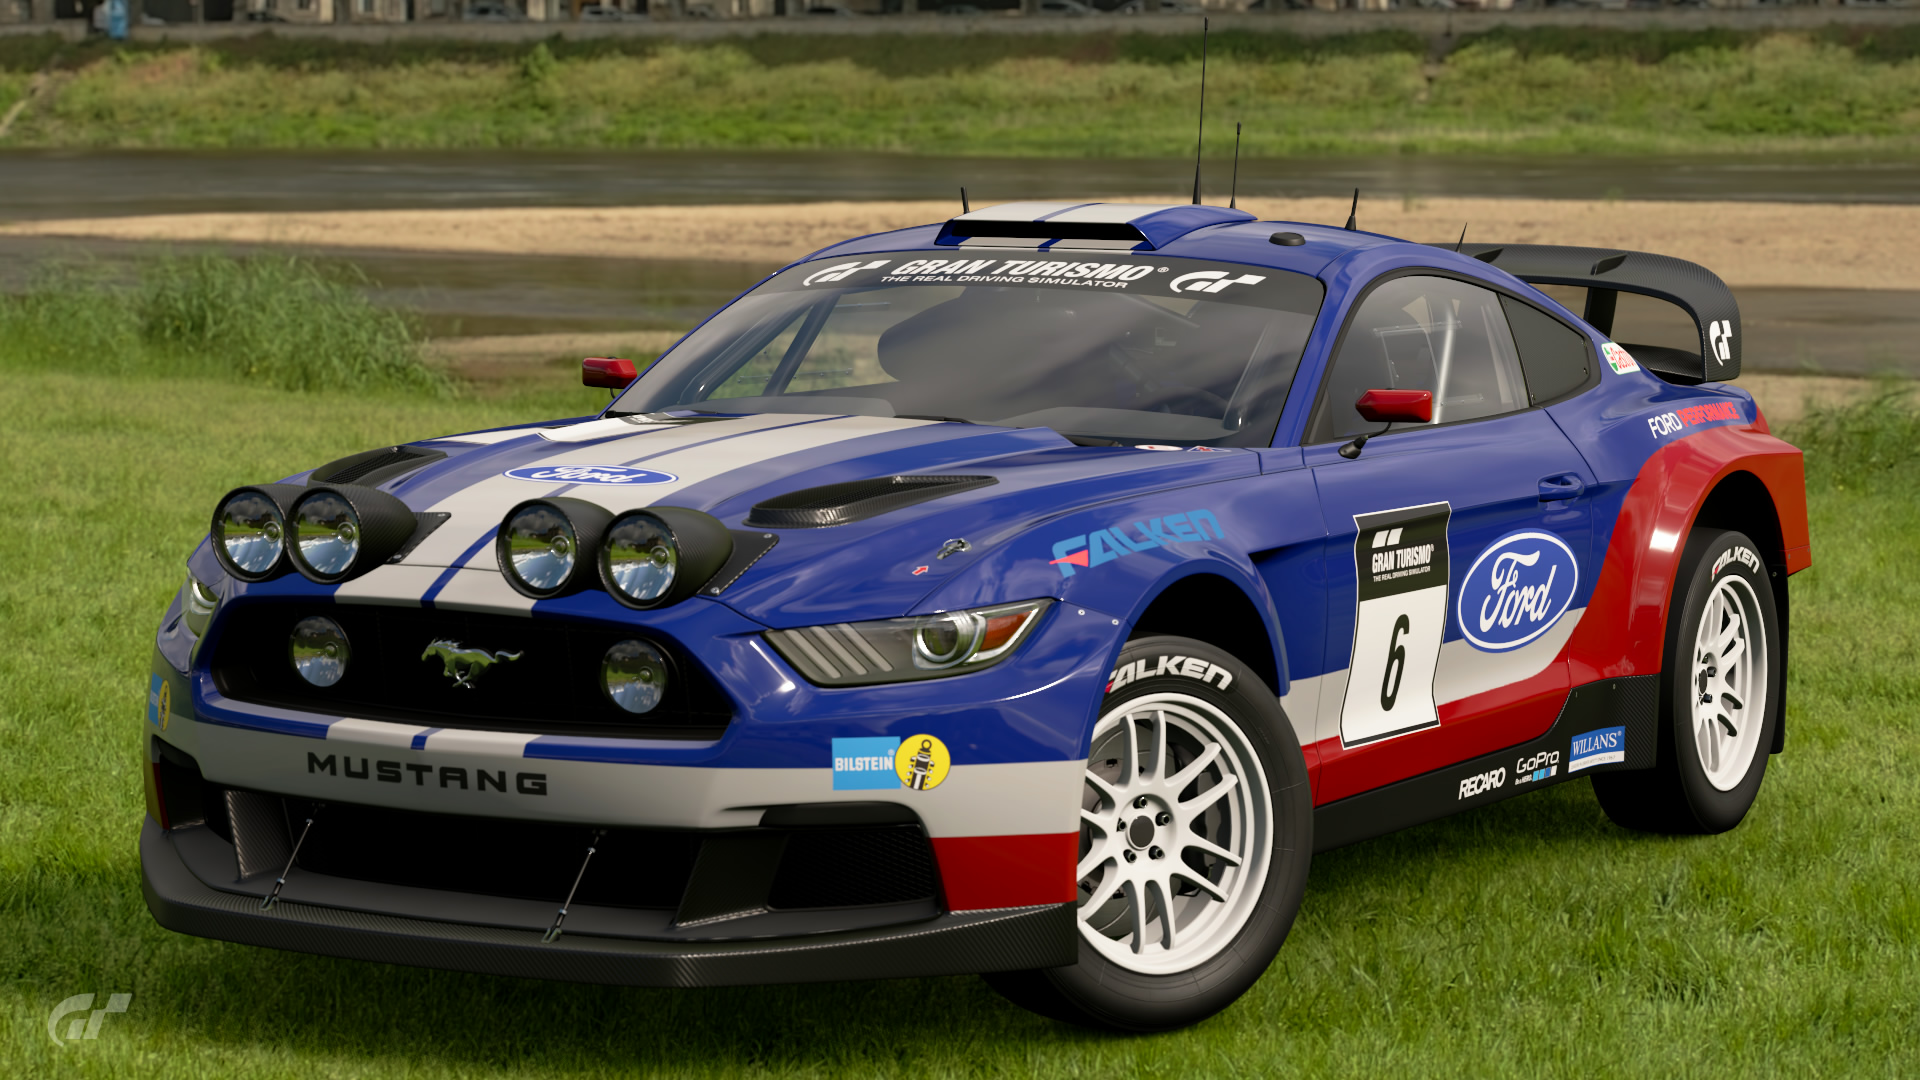 Ford Mustang GrB Rally Car